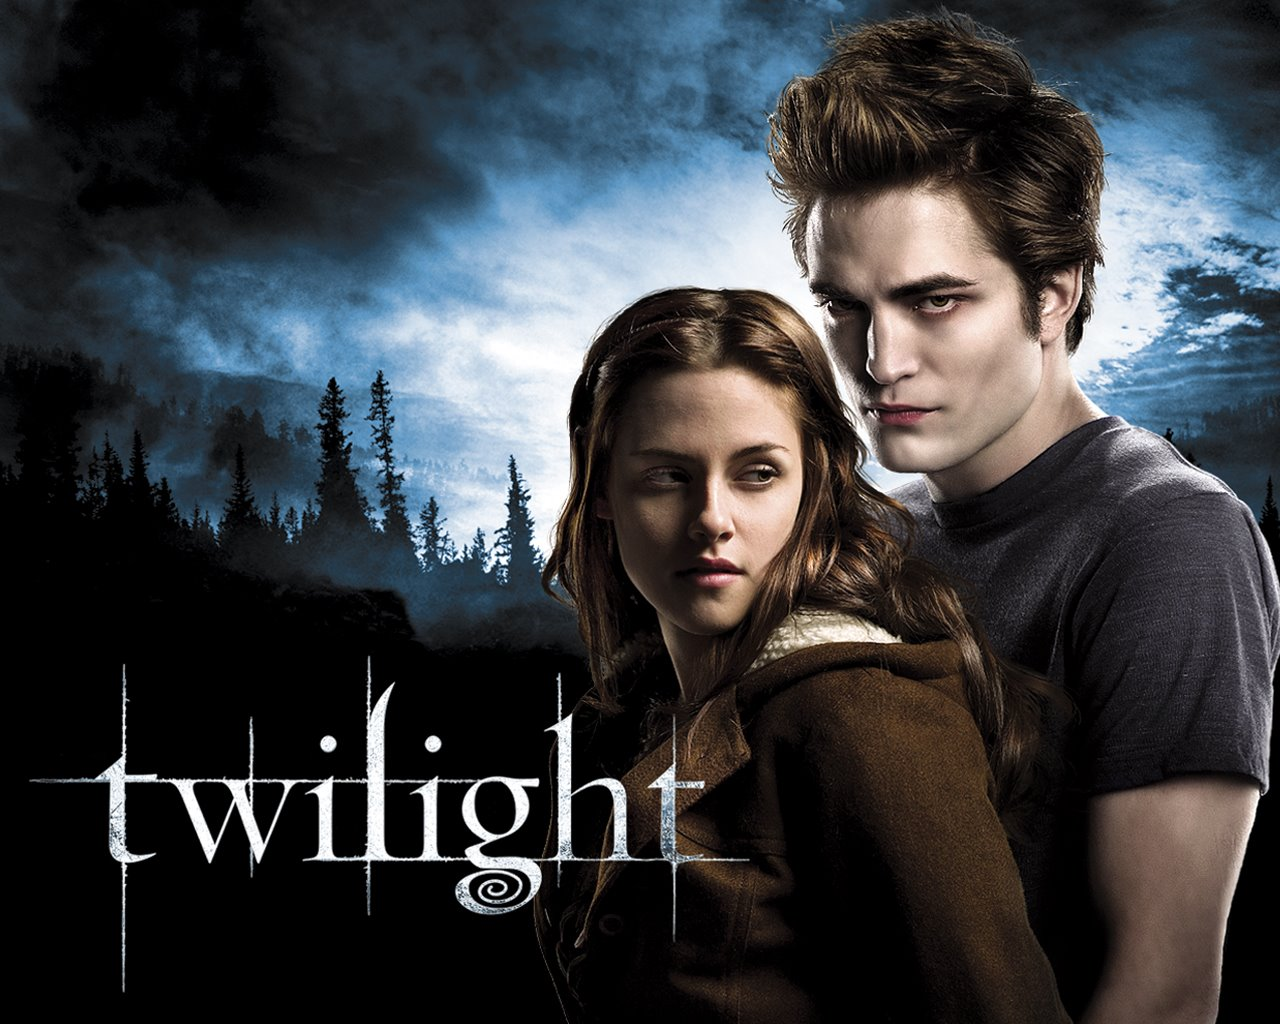 twilight is the story ...